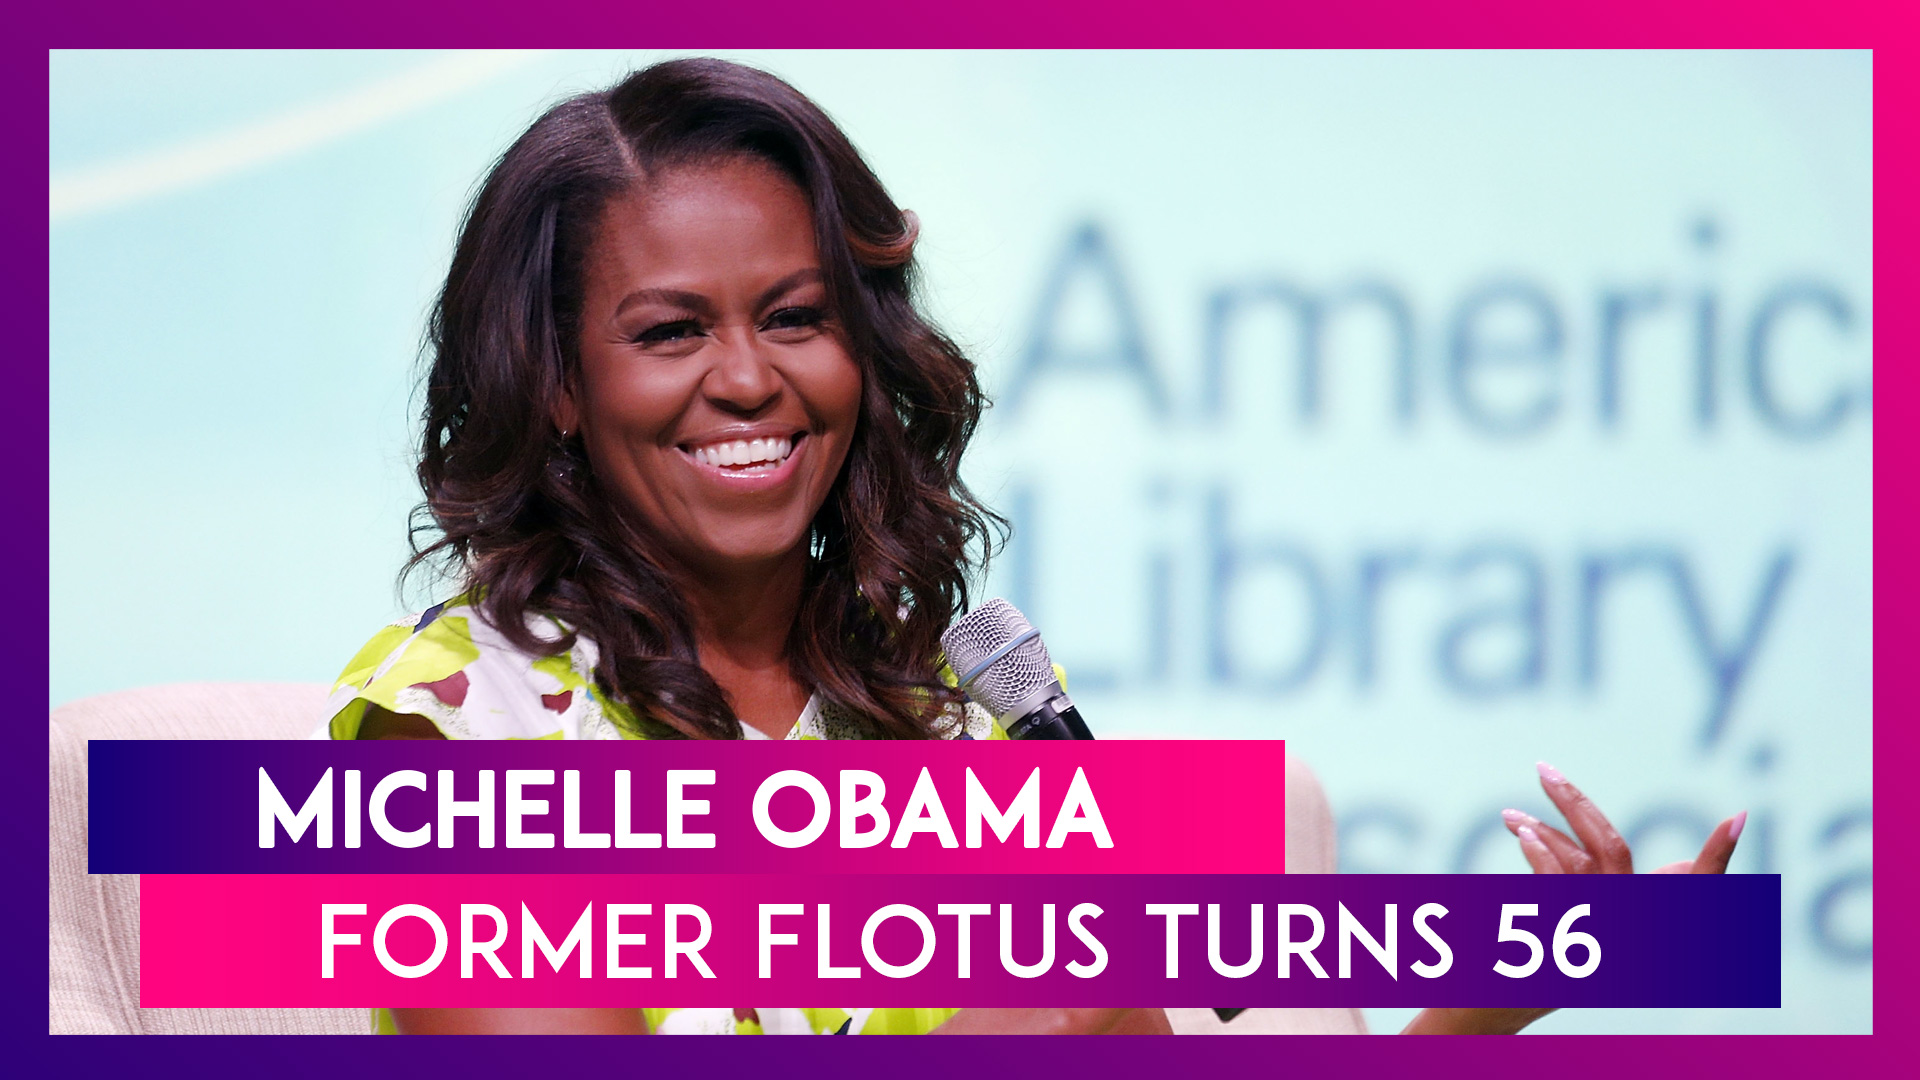 Michelle Obama 56th Birthday: Interesting Facts About First African American First Lady Of The U.S